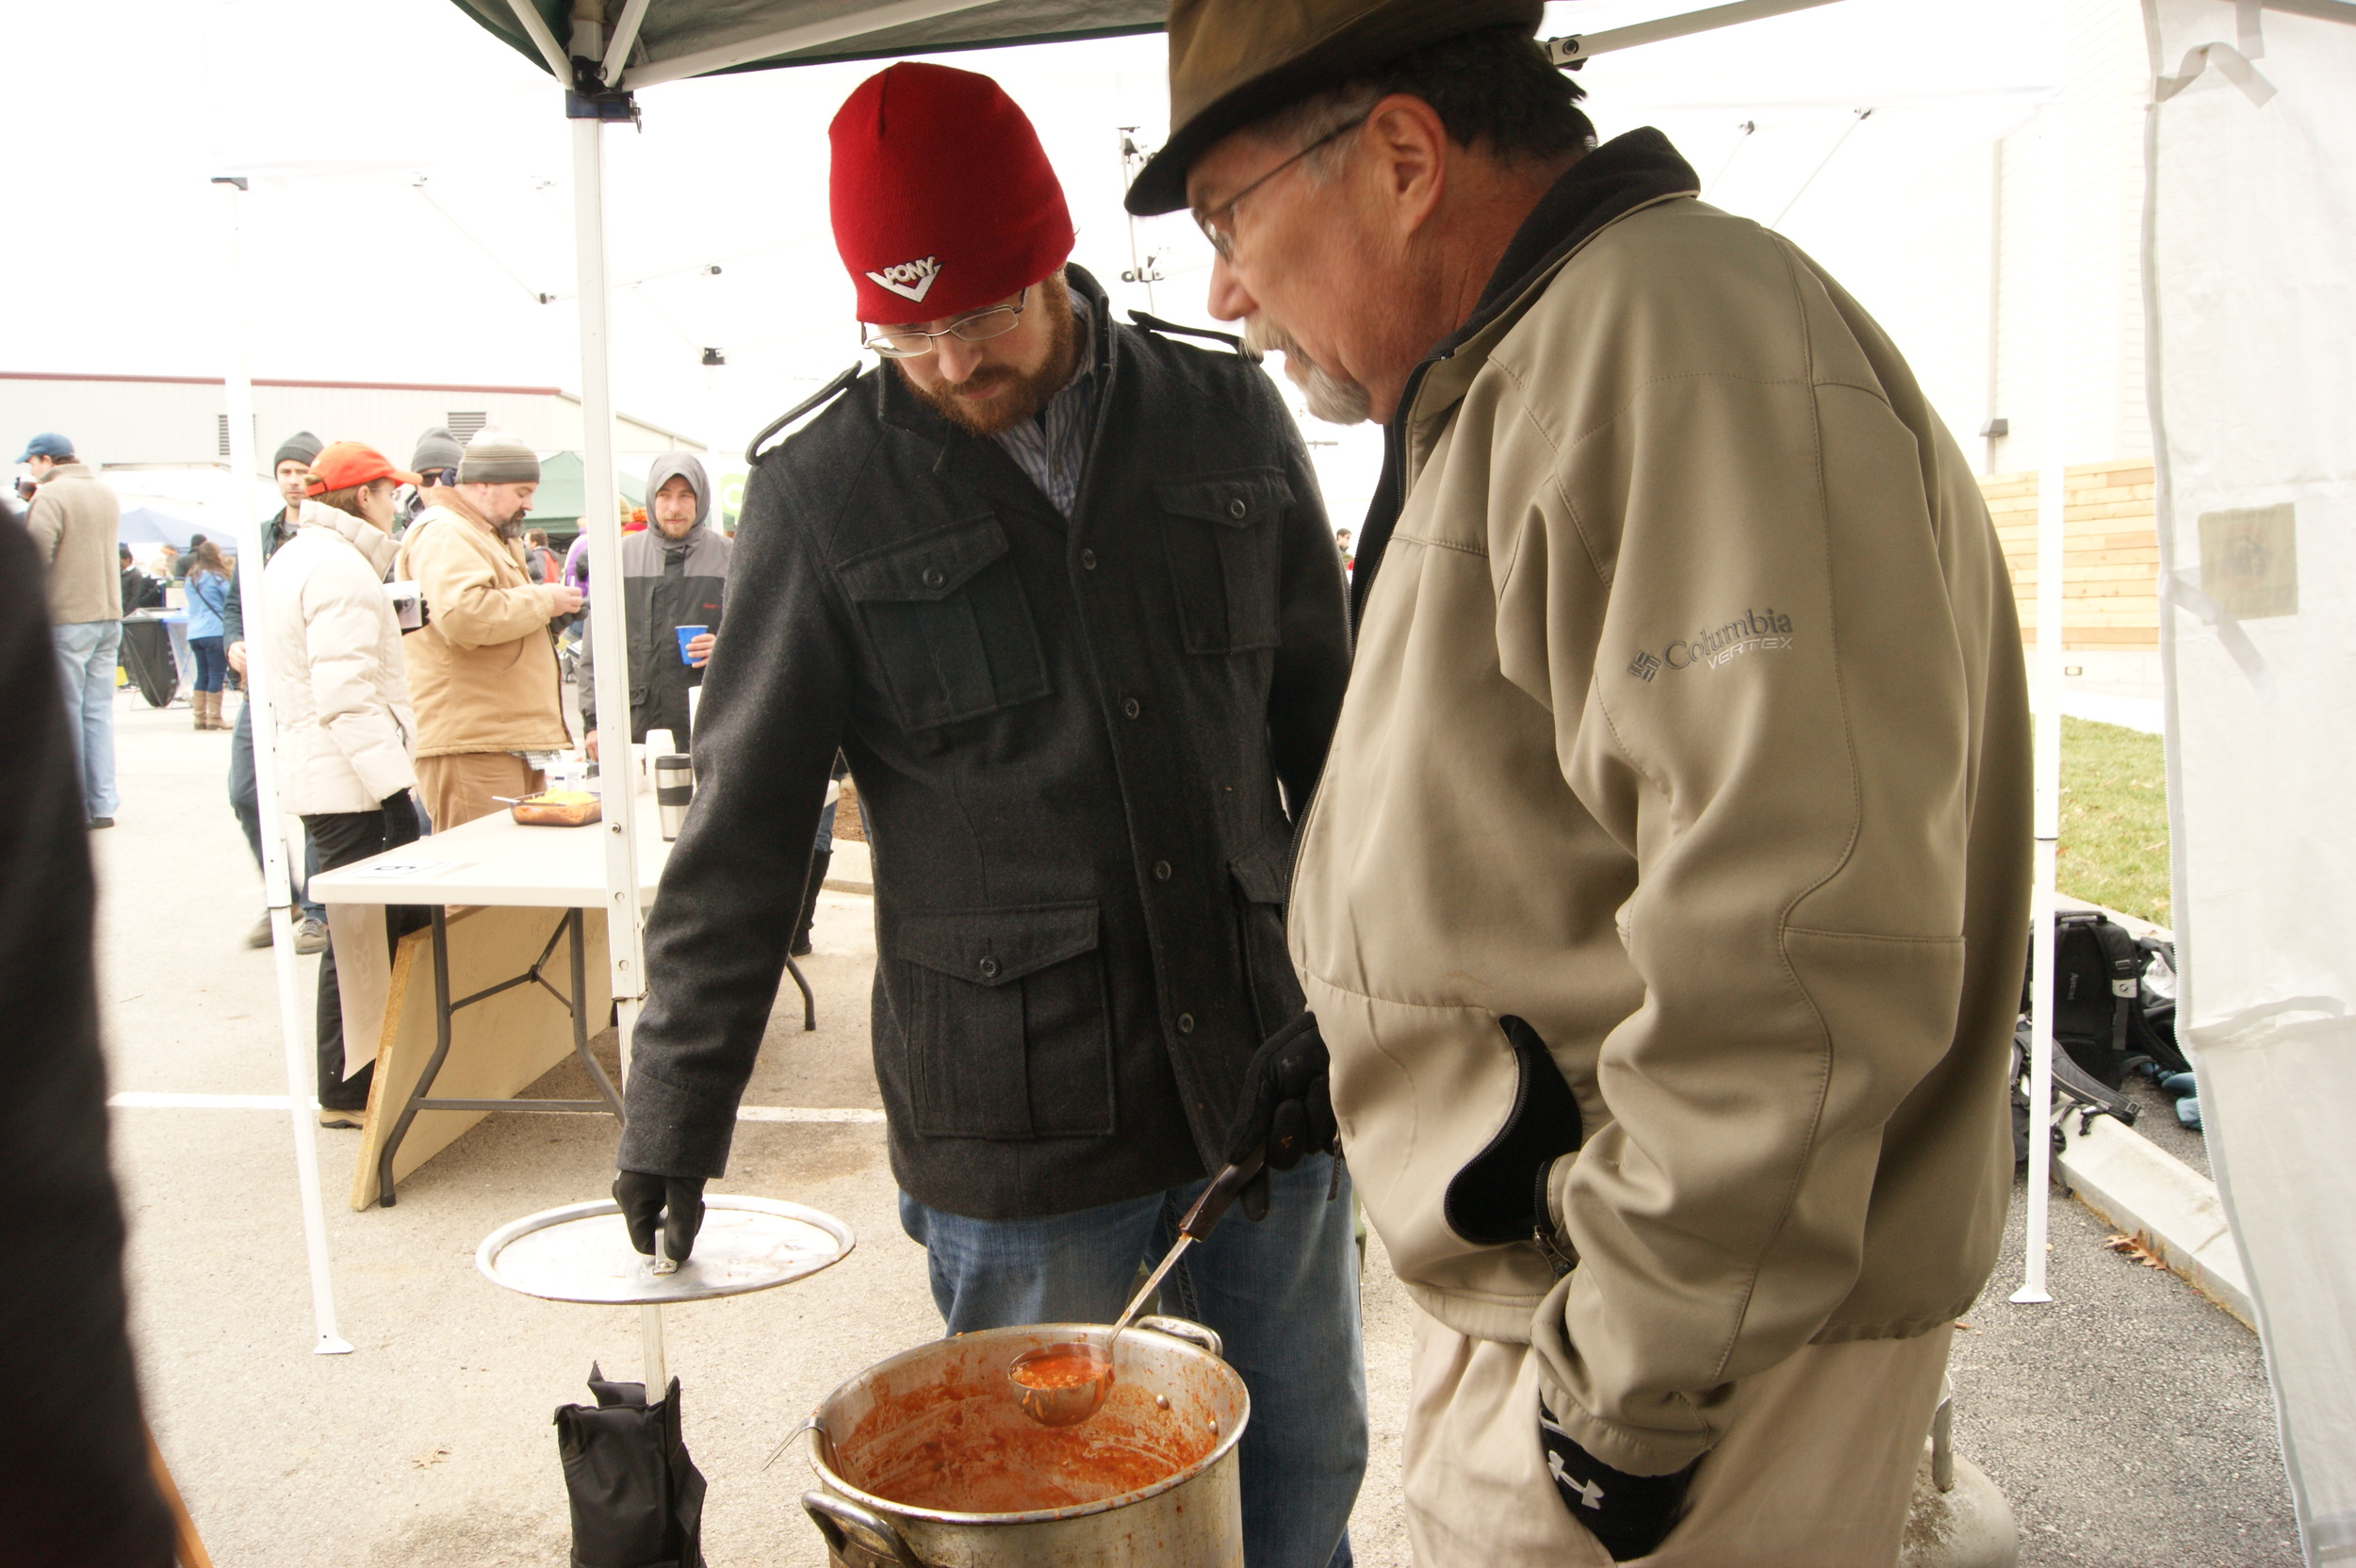 """Mr. Holder a.k.a. """"Walter White"""" cooking our chili!"""